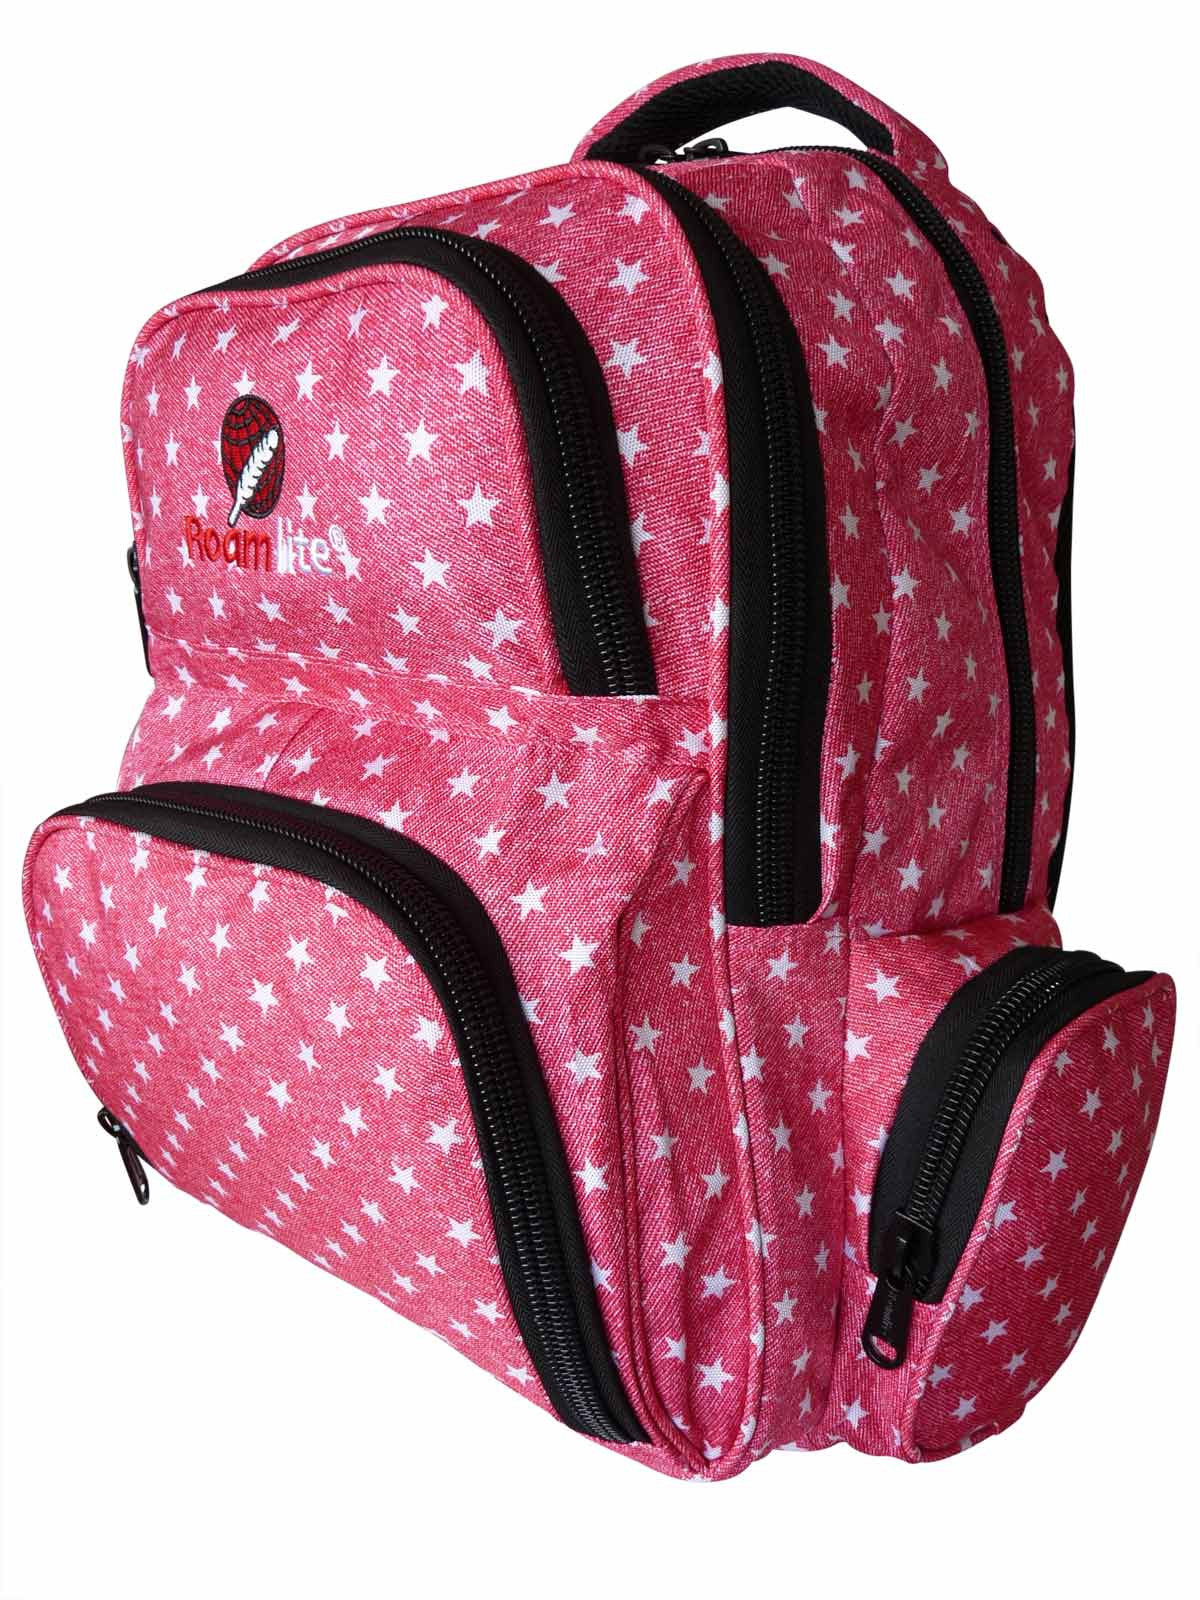 School Backpacks Bags RL88S Pink Stars